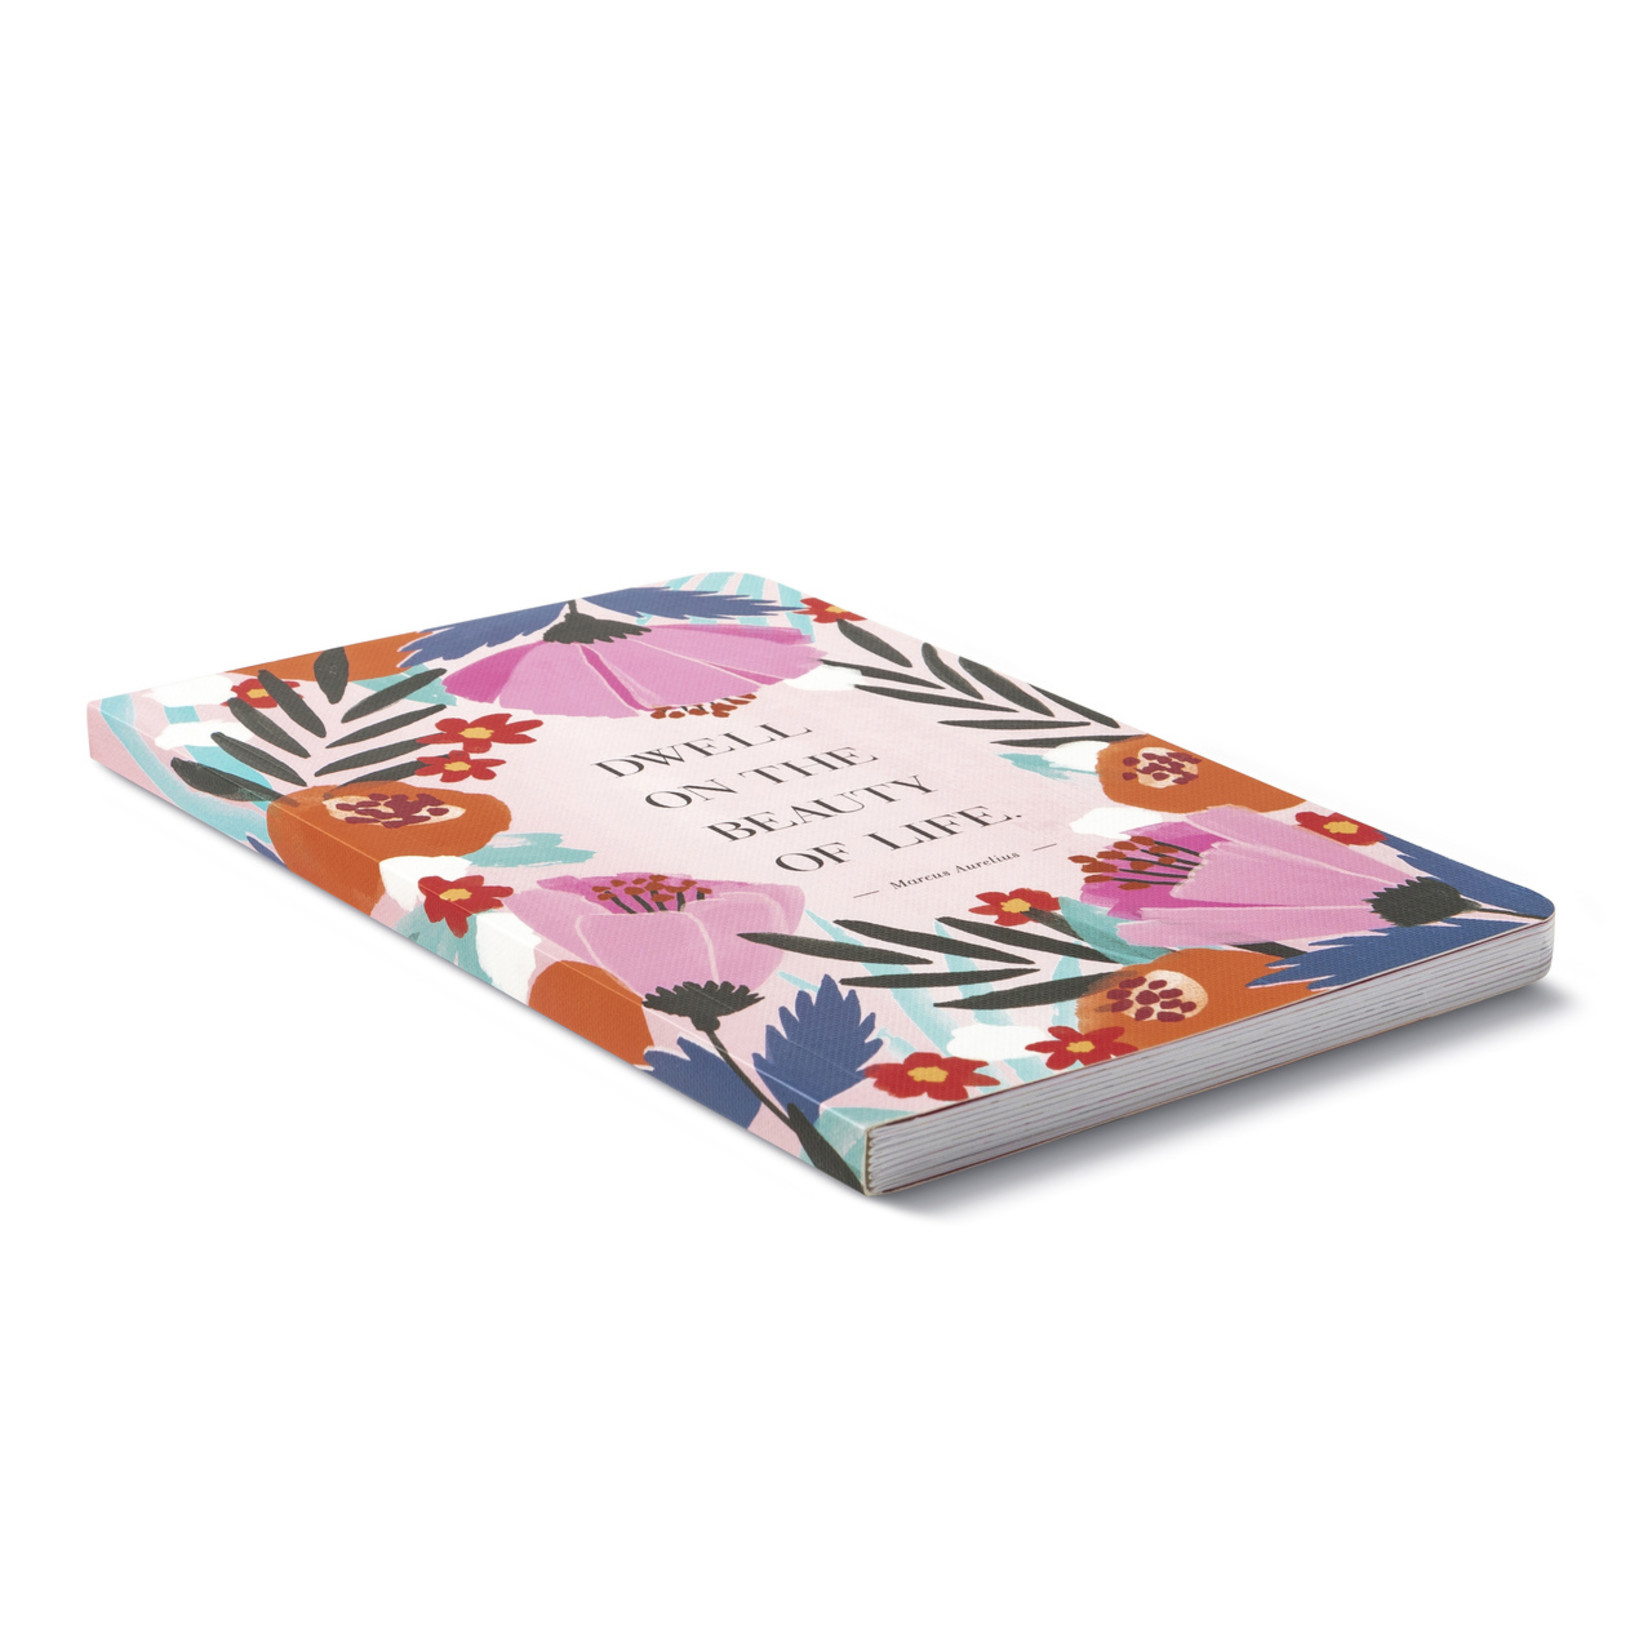 WRITE NOW JOURNAL - DWELL ON THE BEAUTY OF LIFE